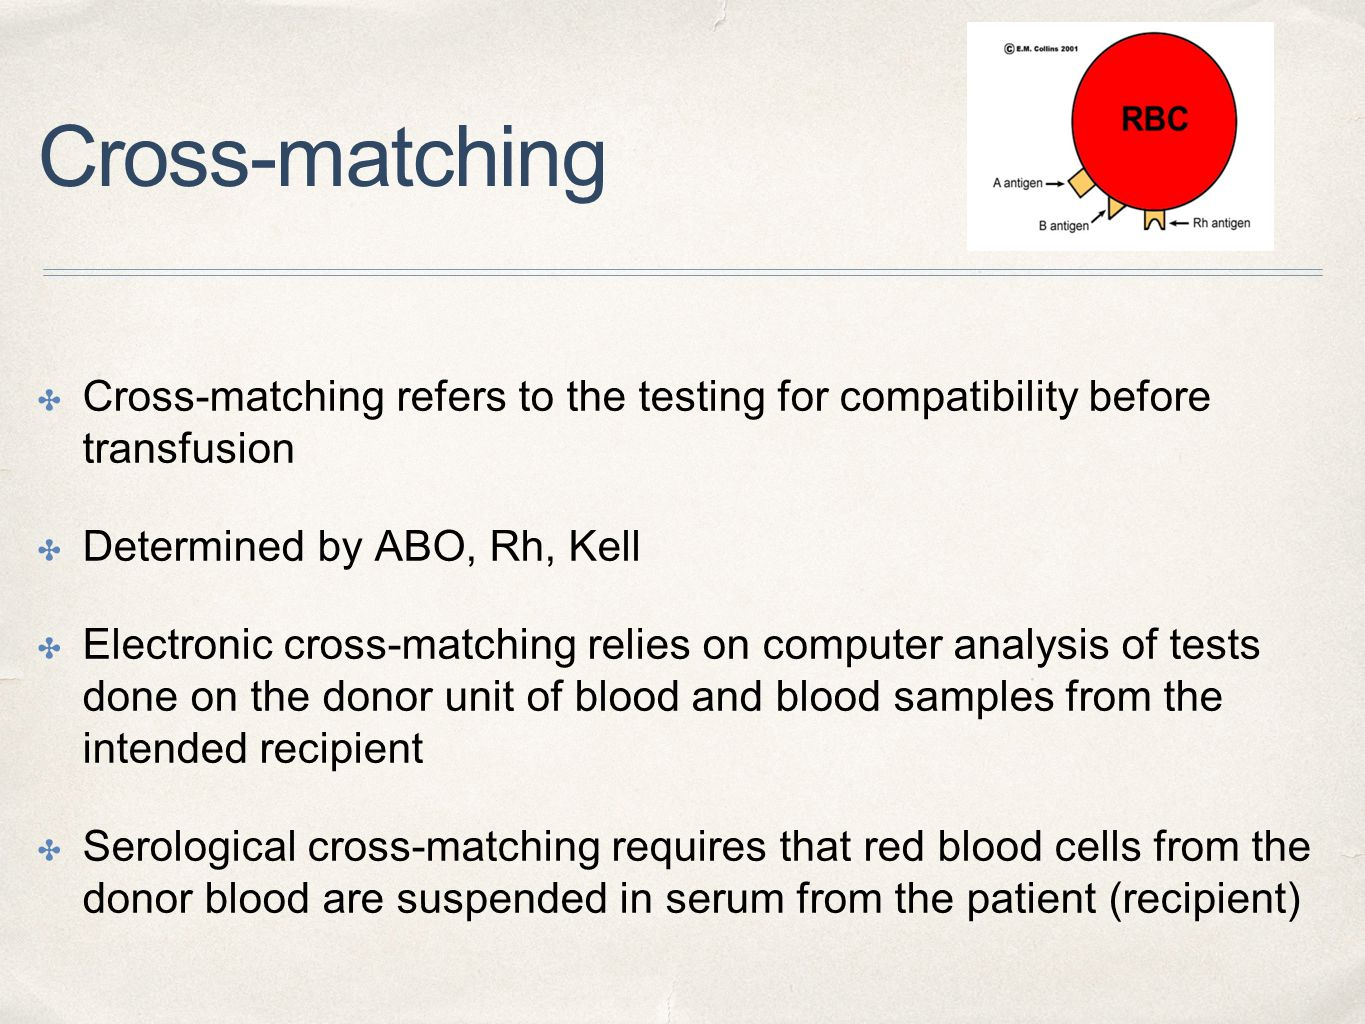 Cross-matching Cross-matching refers to the testing for compatibility before transfusion. Determined by ABO, Rh, Kell.